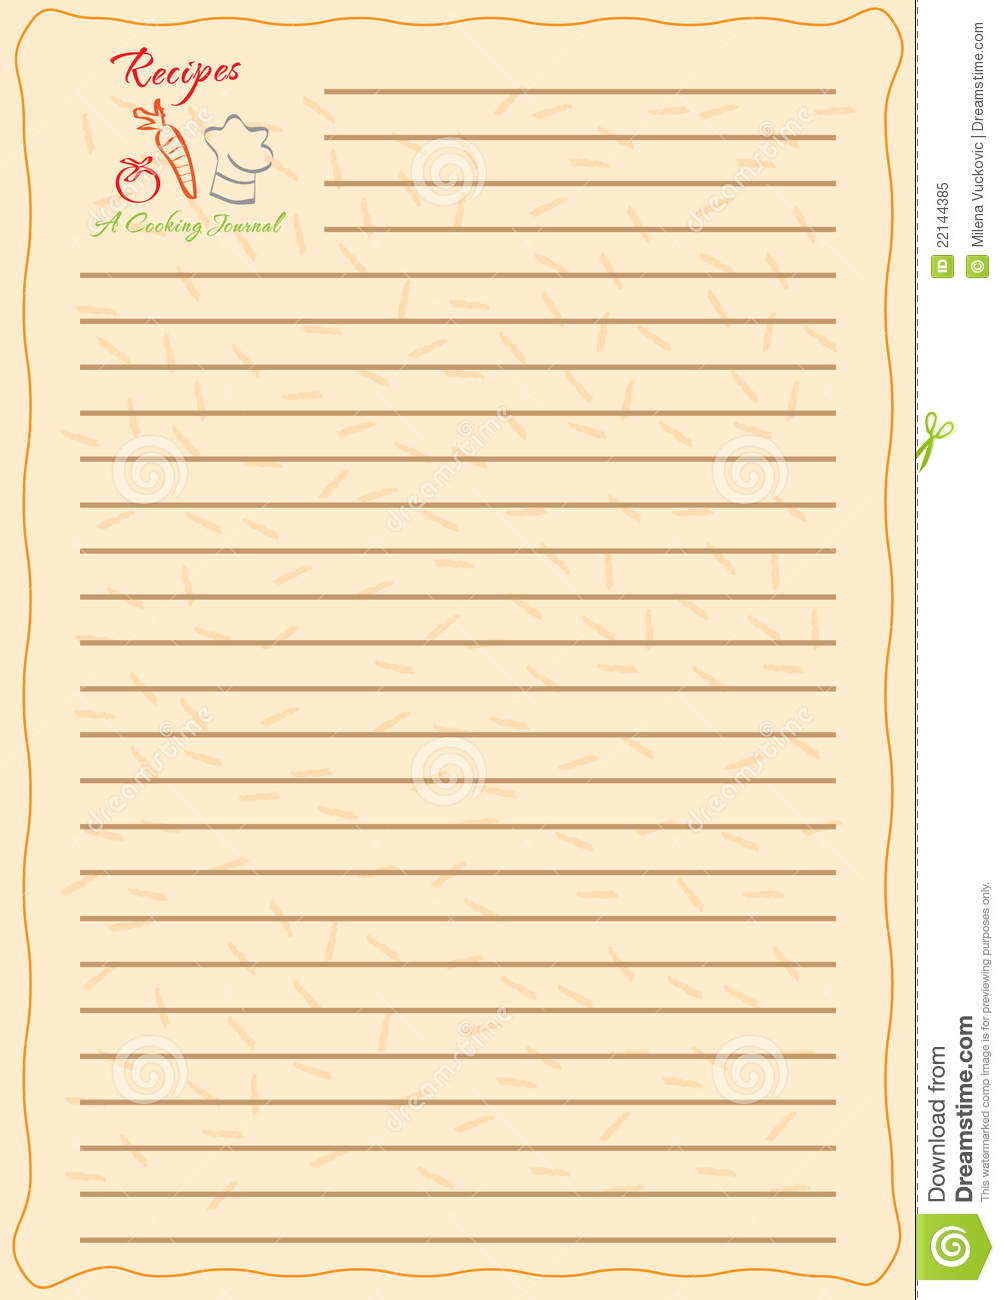 Template Design For A Recipe Book Royalty Free Stock Photo - Image ...